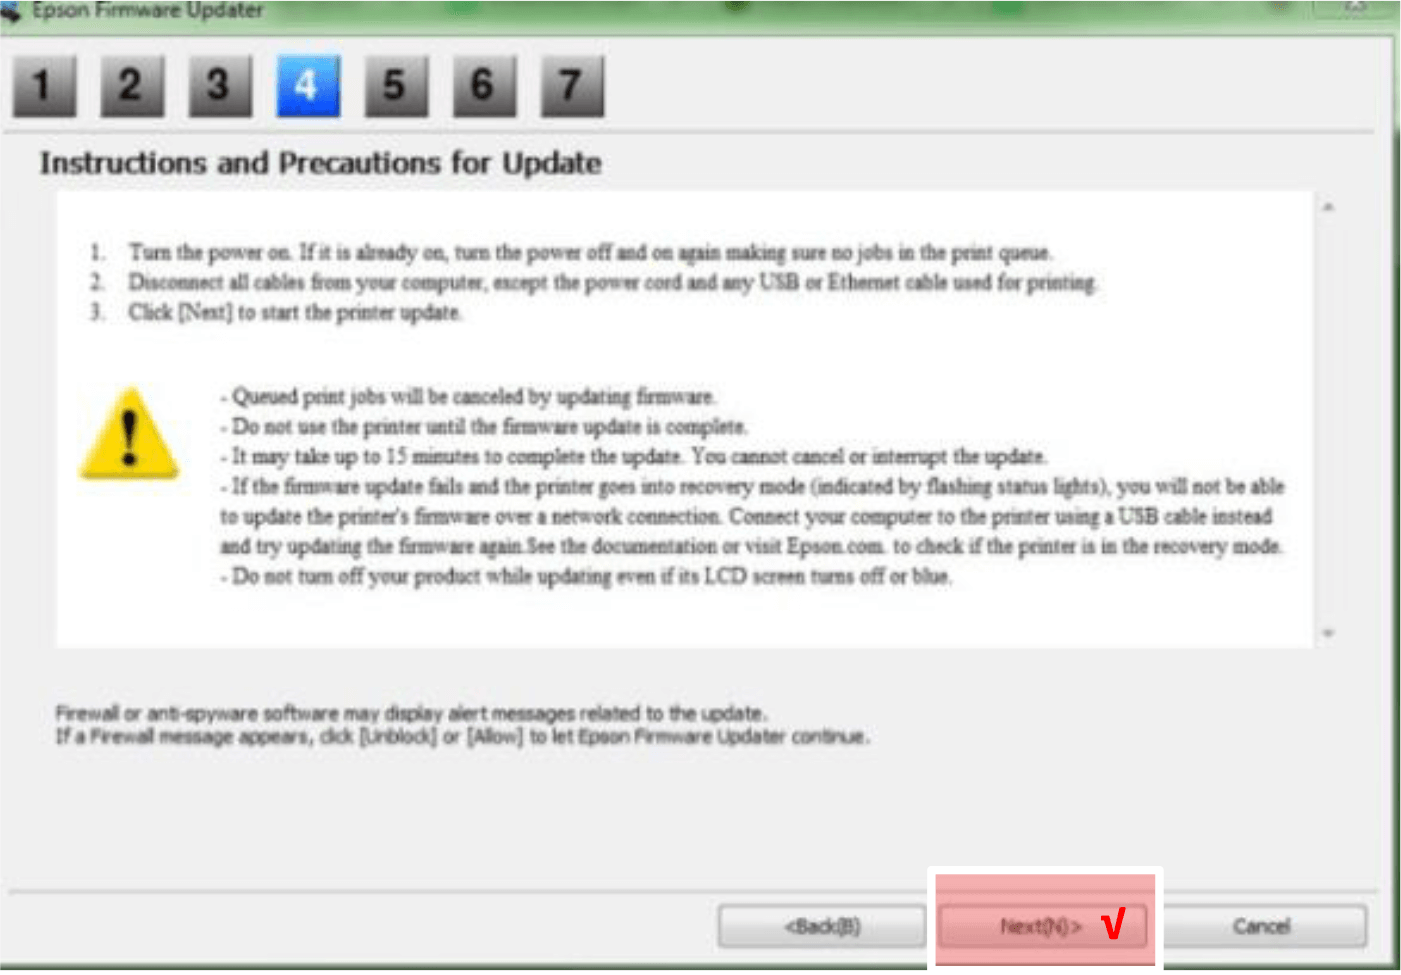 Epson Firmware Updater step 4